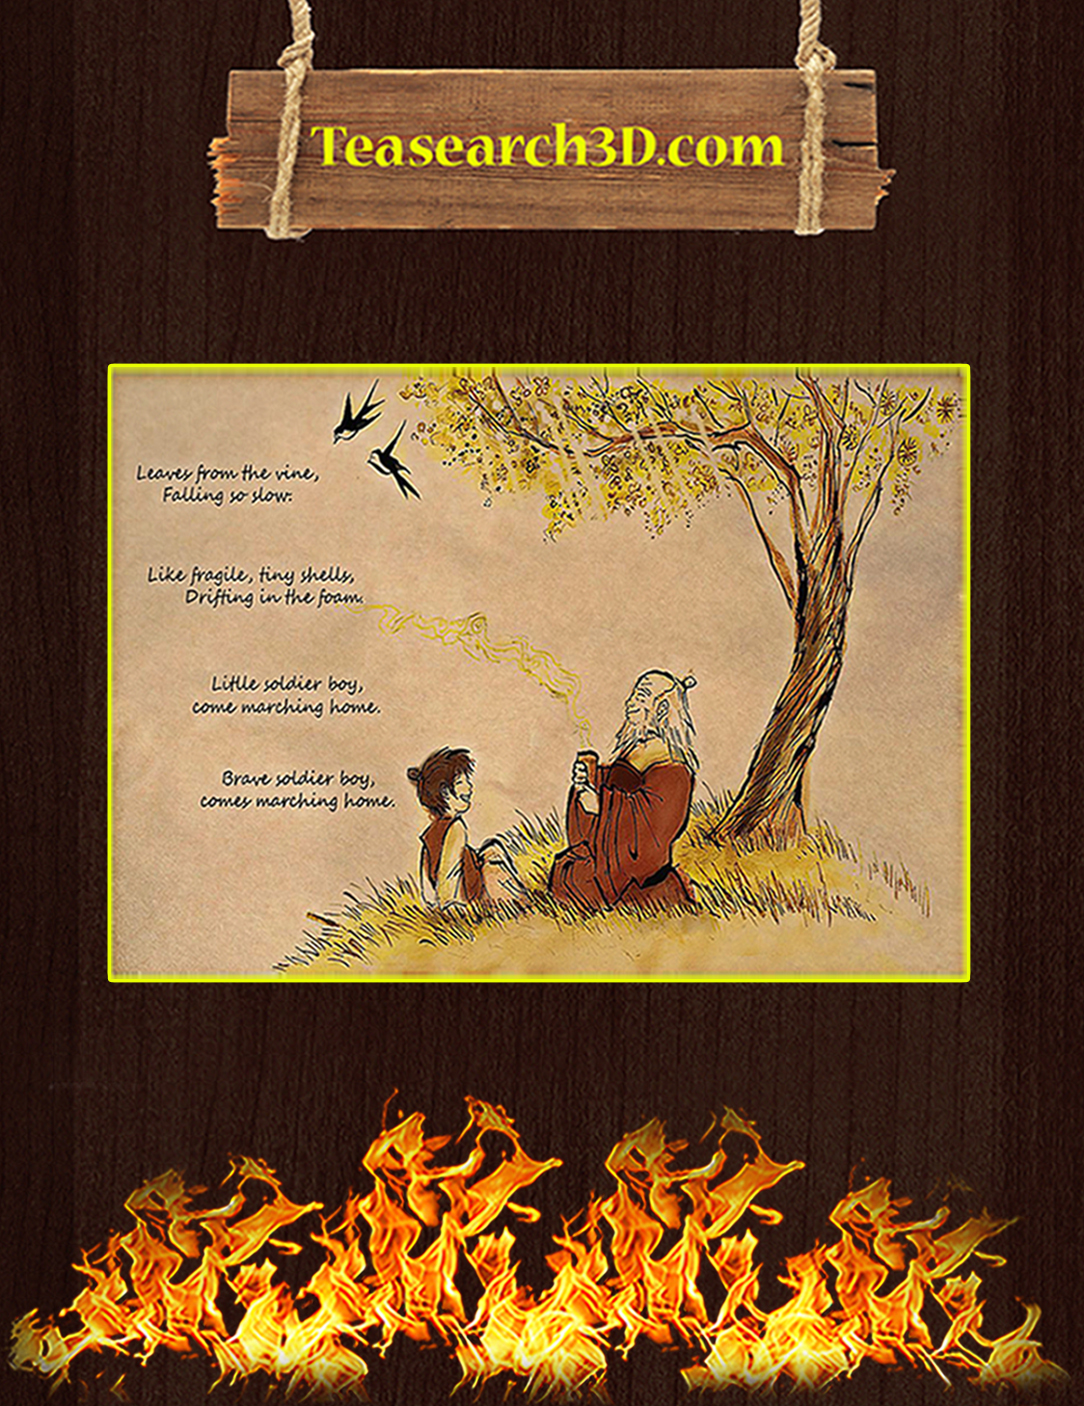 Leaves from the vine falling so slow poster A2